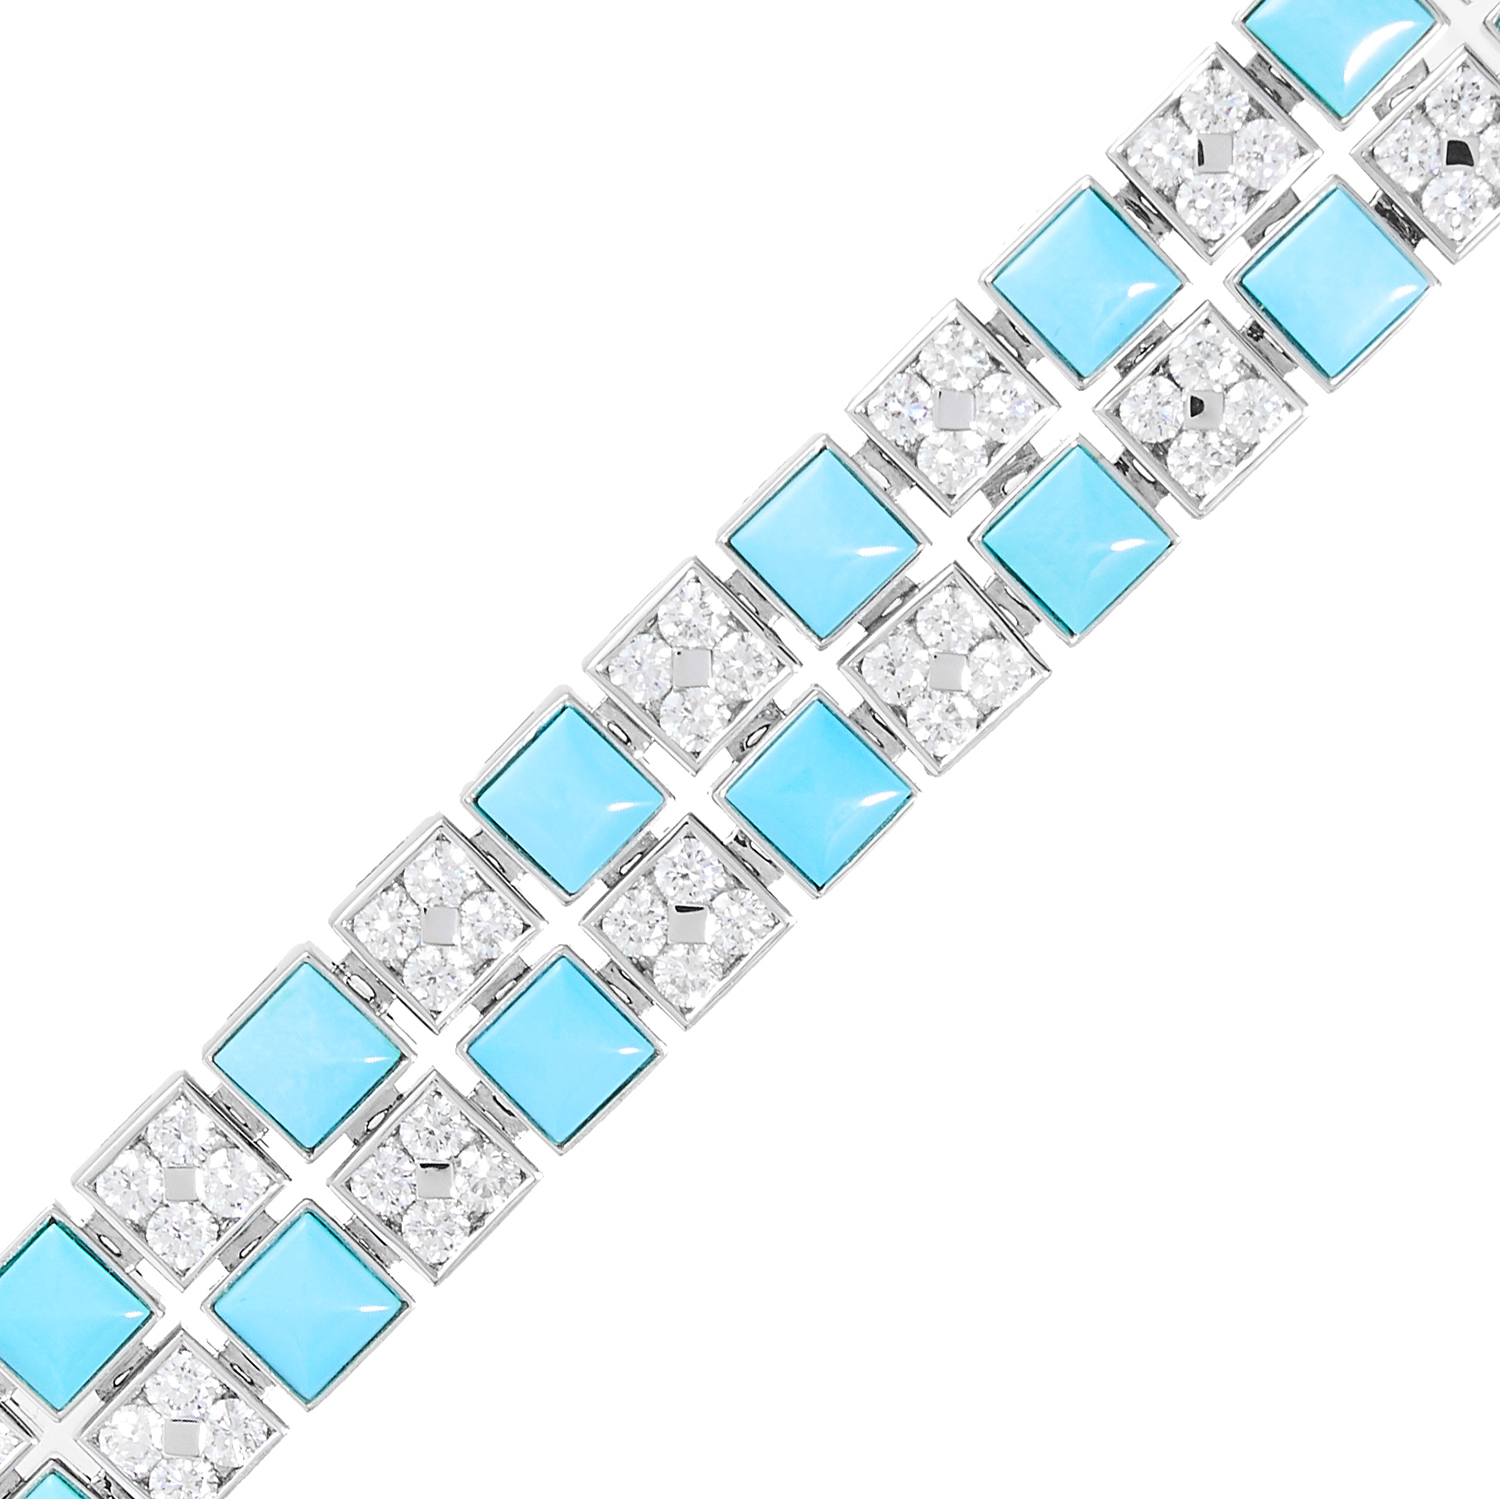 A TURQUOISE AND DIAMOND BRACELET, PICCHIOTTI in 18ct white gold, formed of a double row of - Image 2 of 2